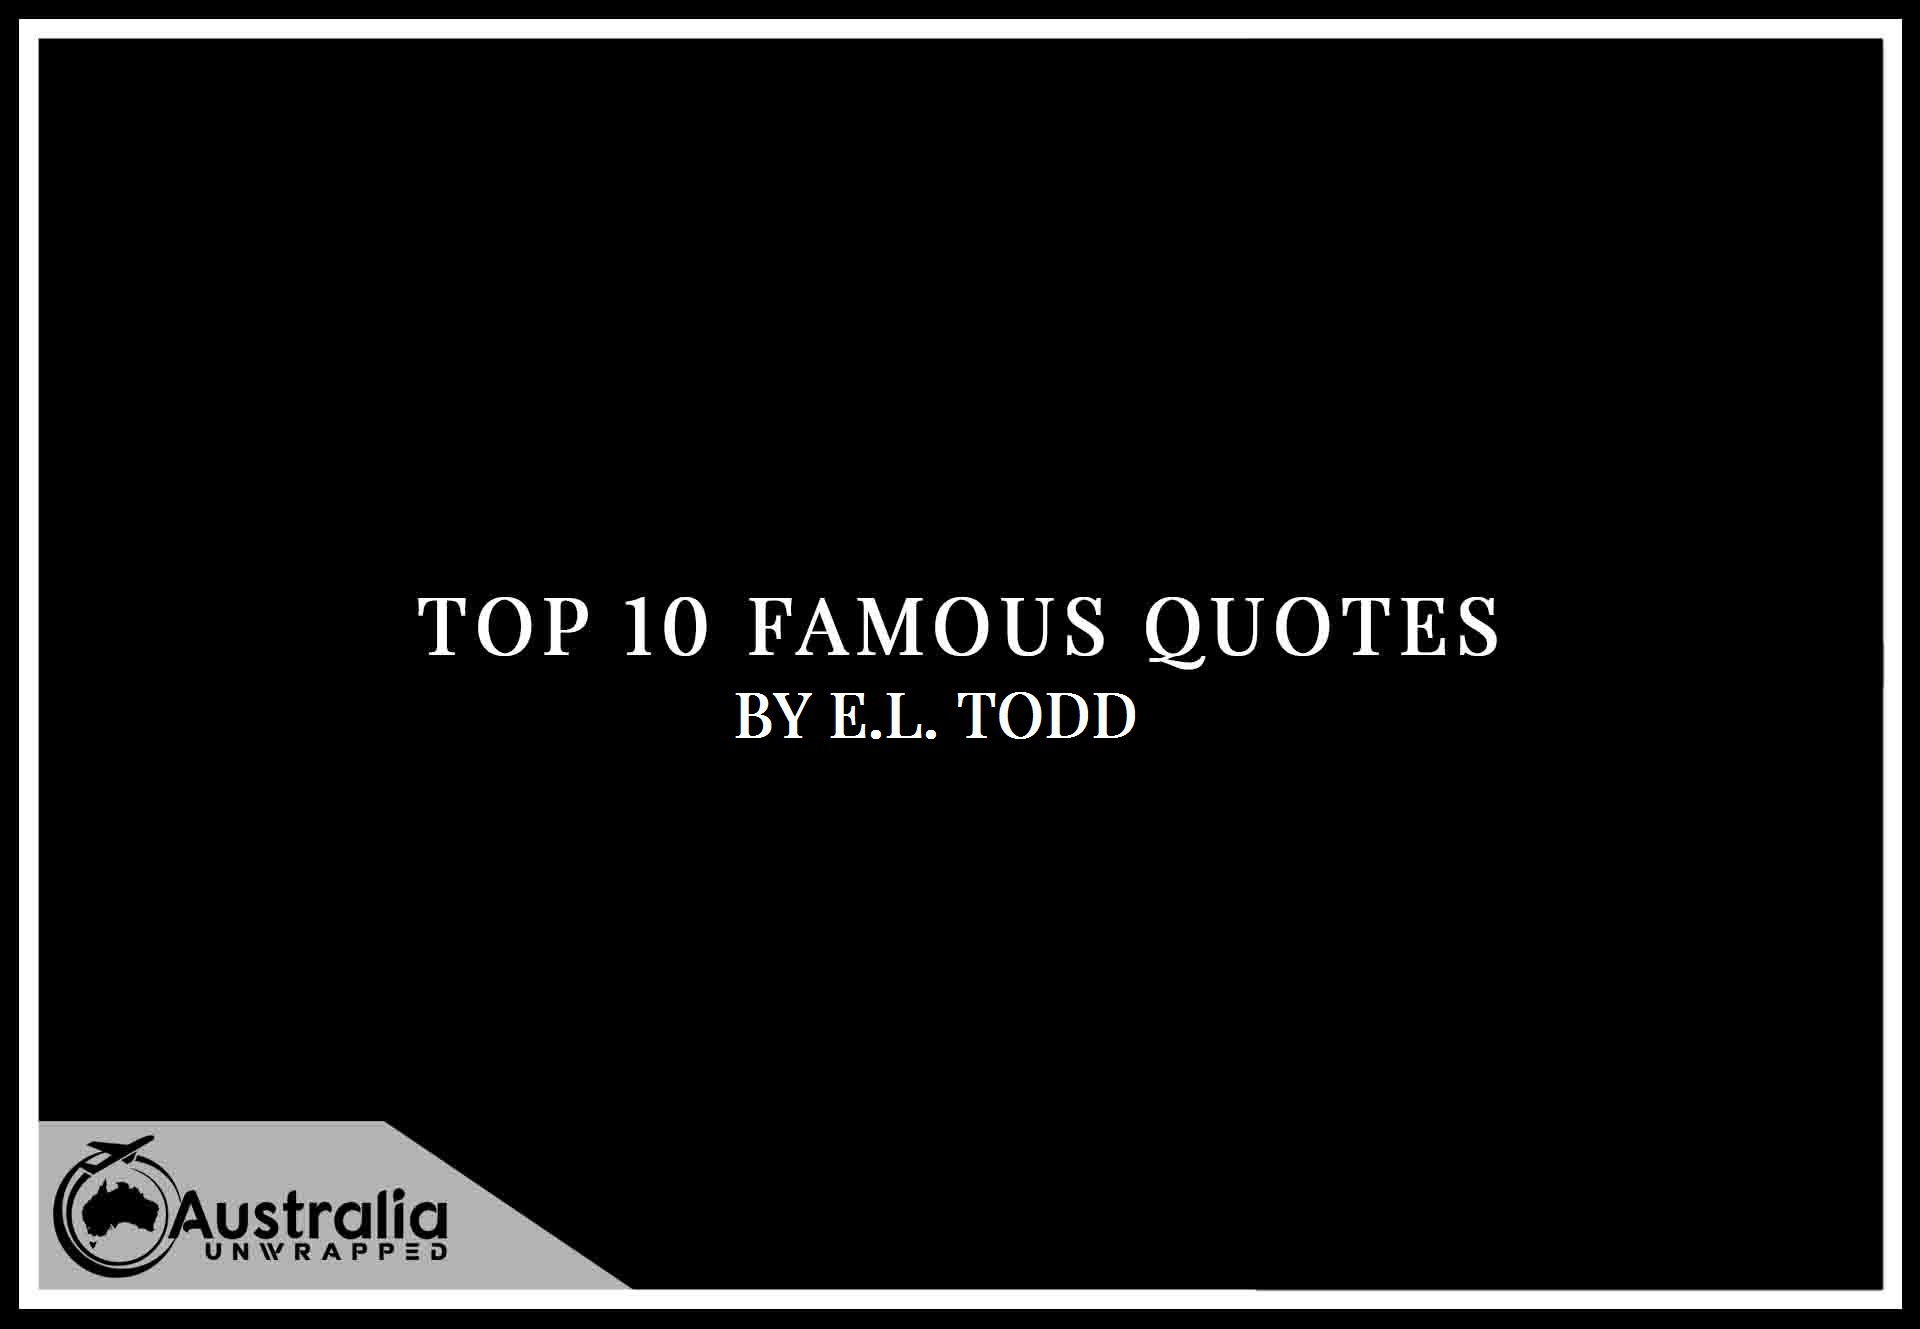 E.L. Todd's Top 10 Popular and Famous Quotes